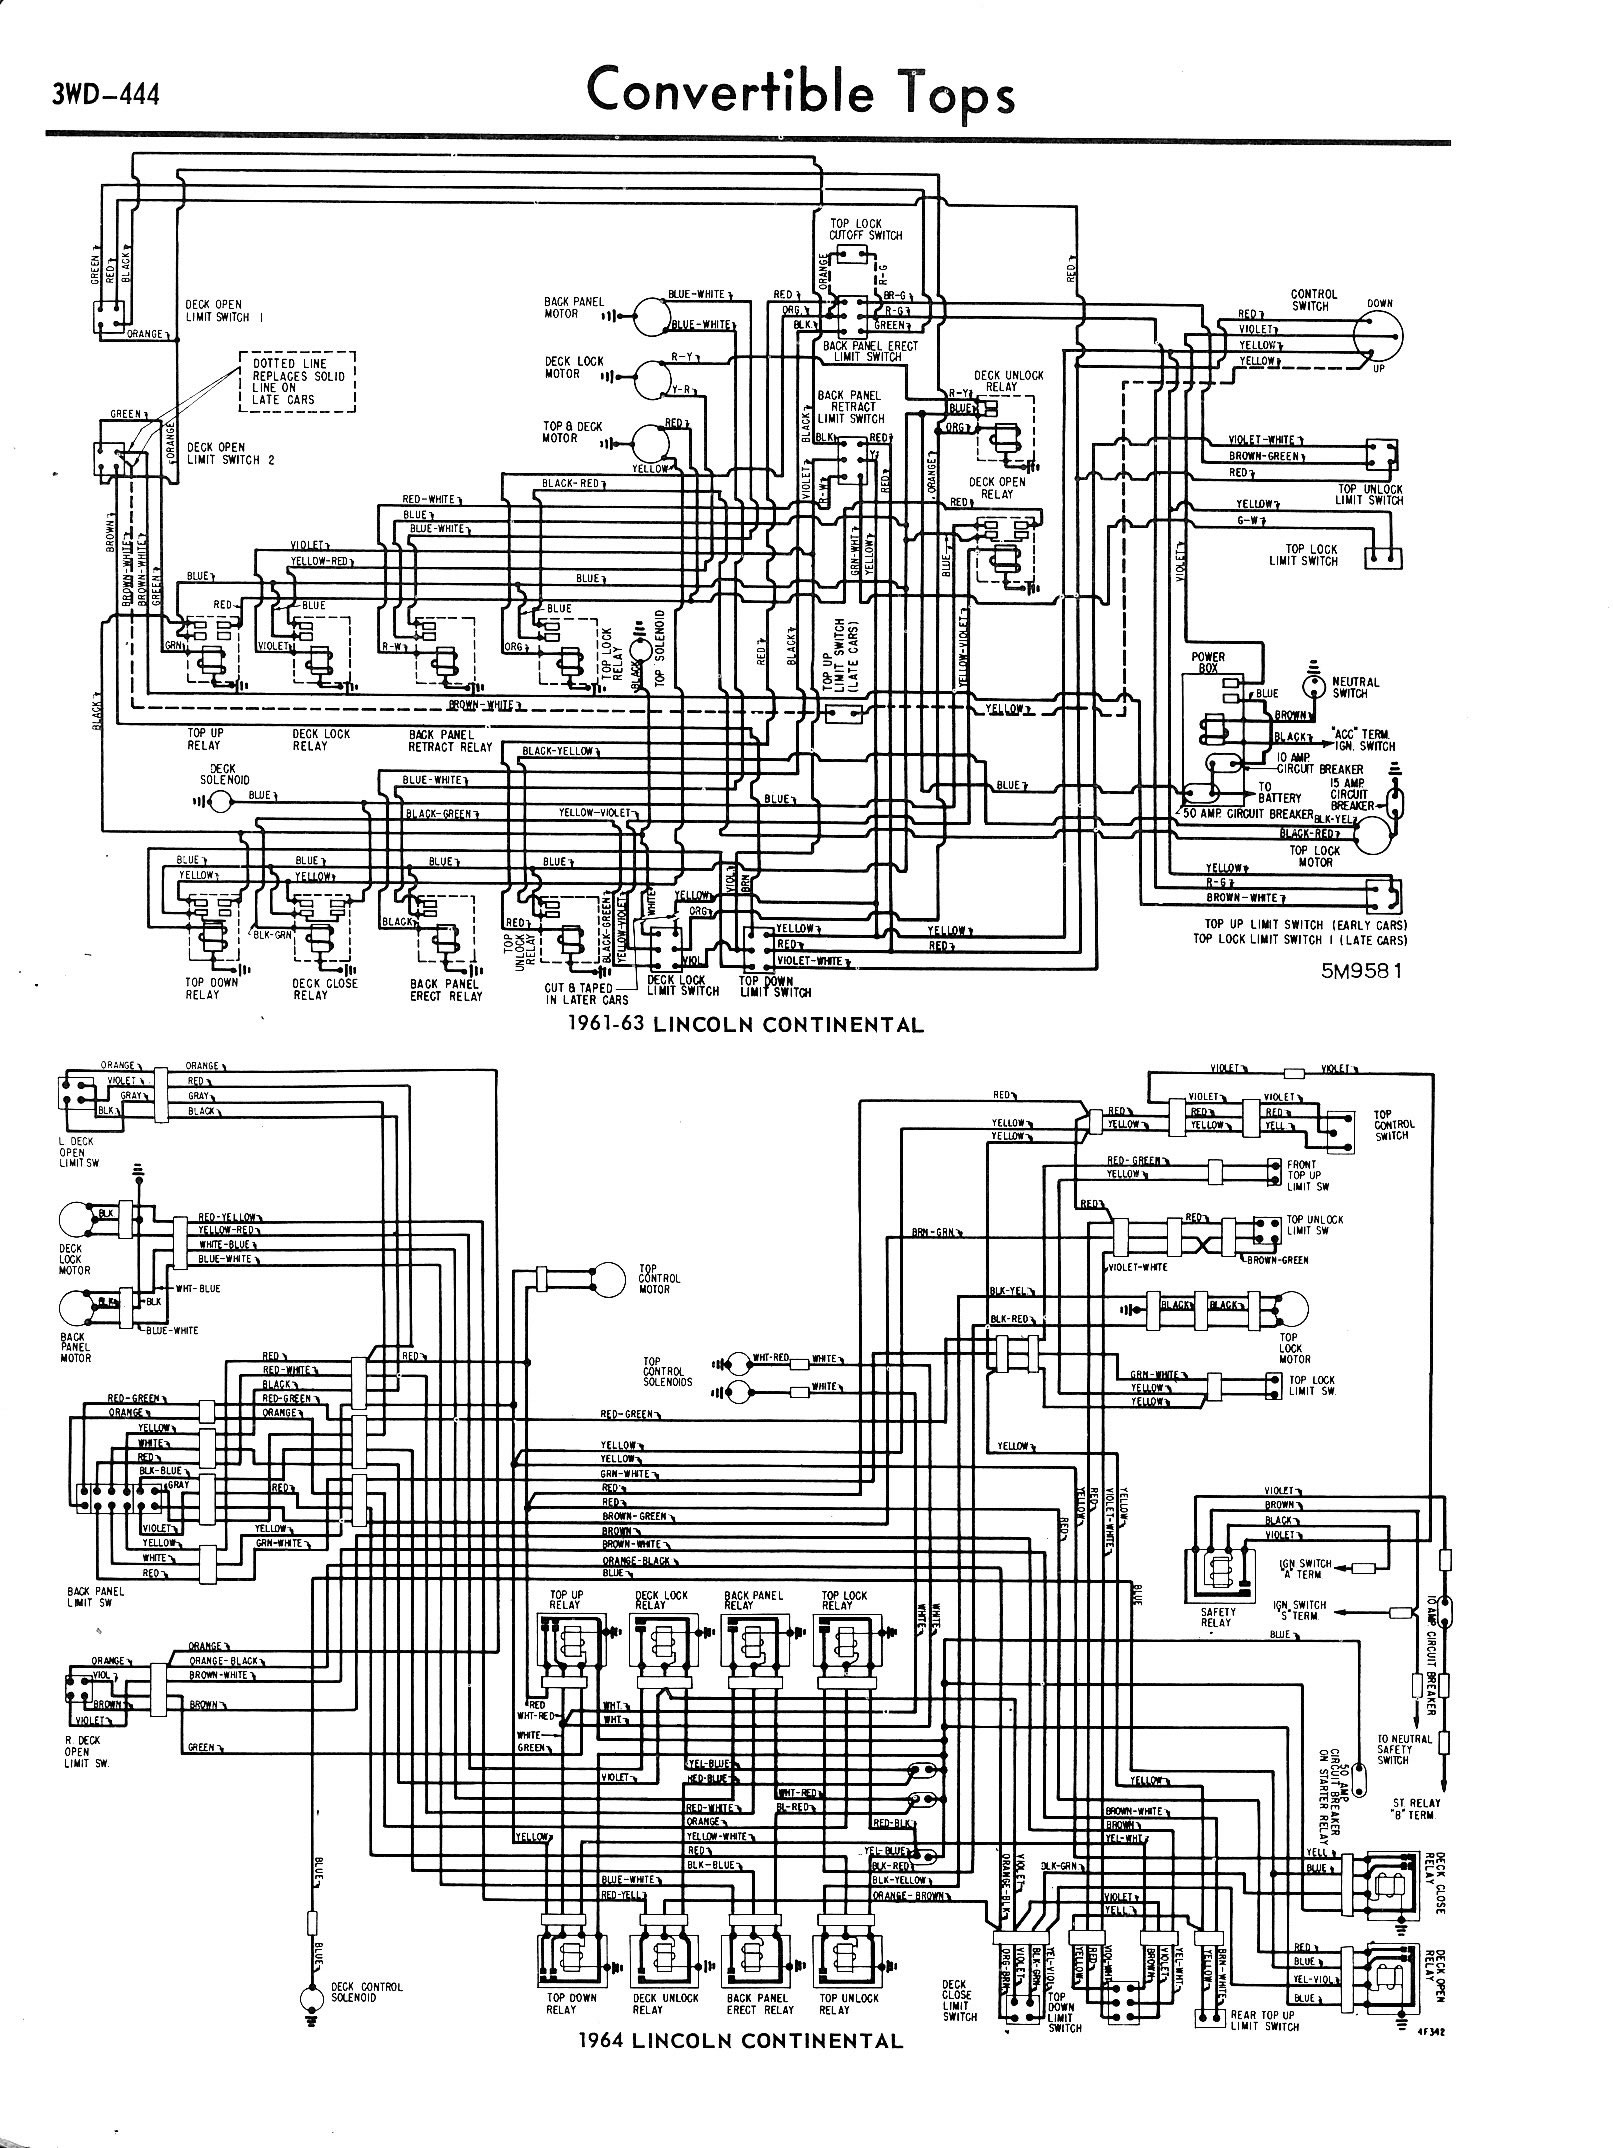 3WD 444_jpg ford diagrams wiring diagram for 1966 ford fairlane at gsmx.co